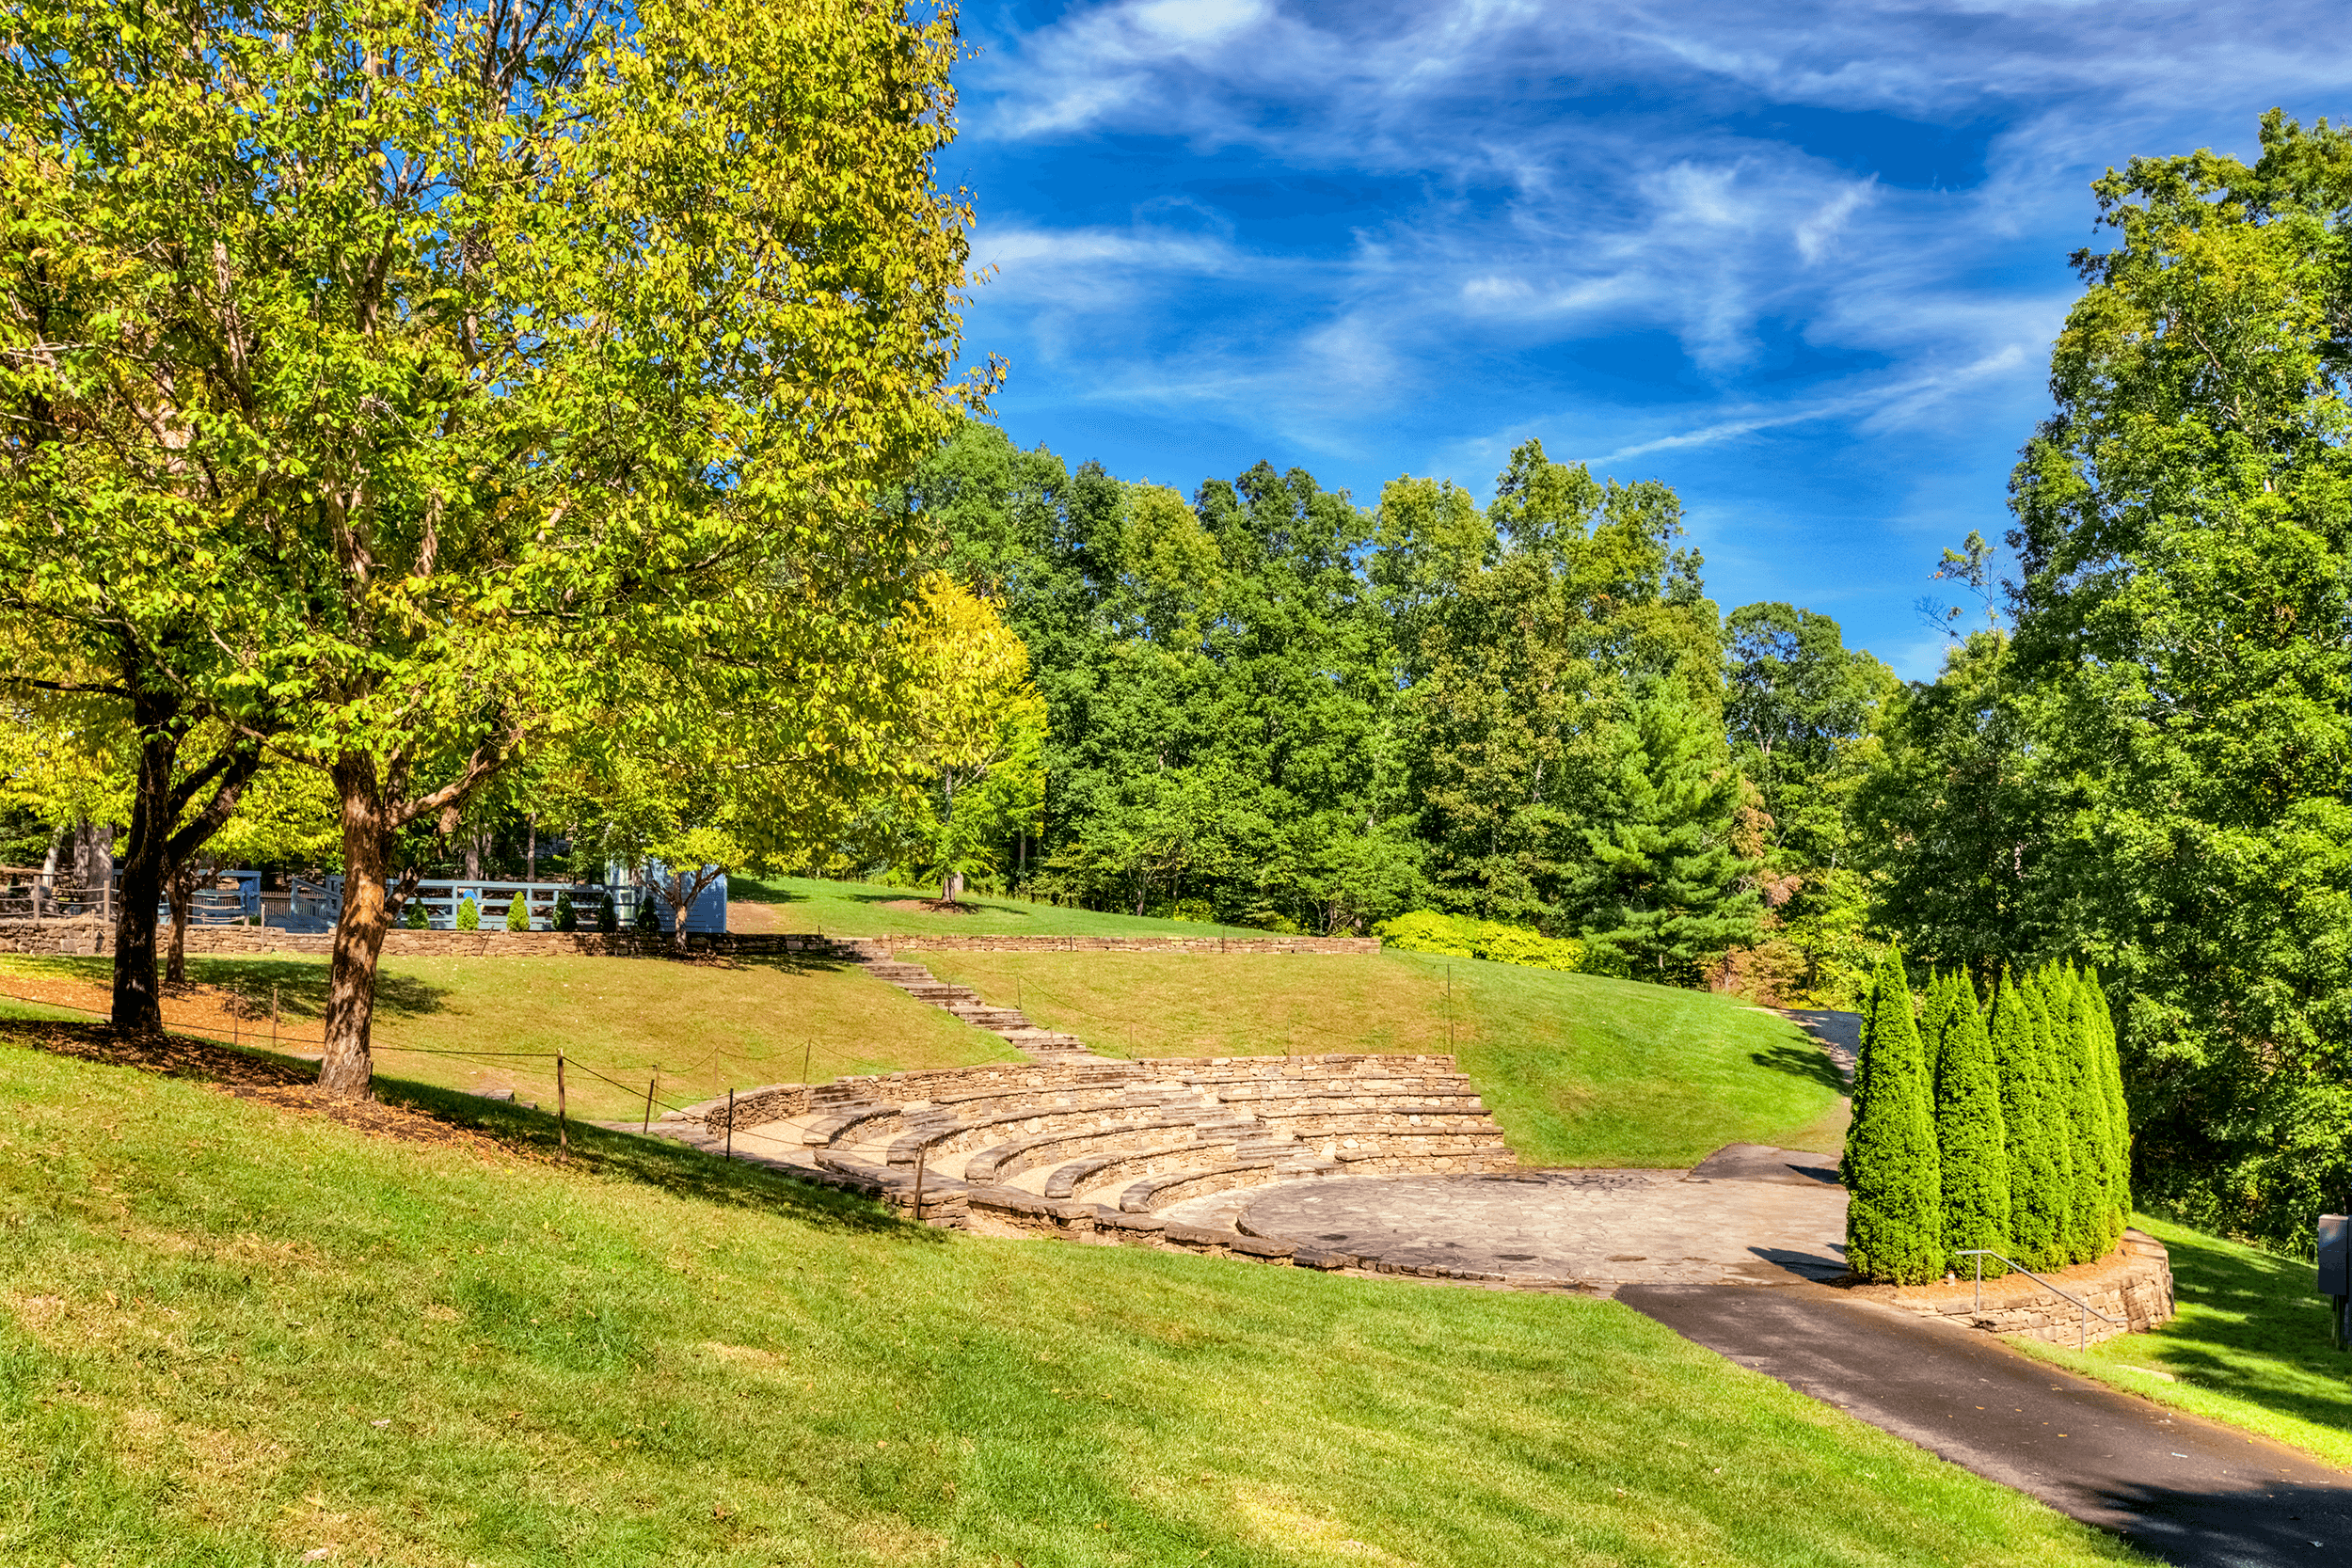 The  Outdoor Event Center  is an amphitheater, which is used for lectures, performances, and cultural events.